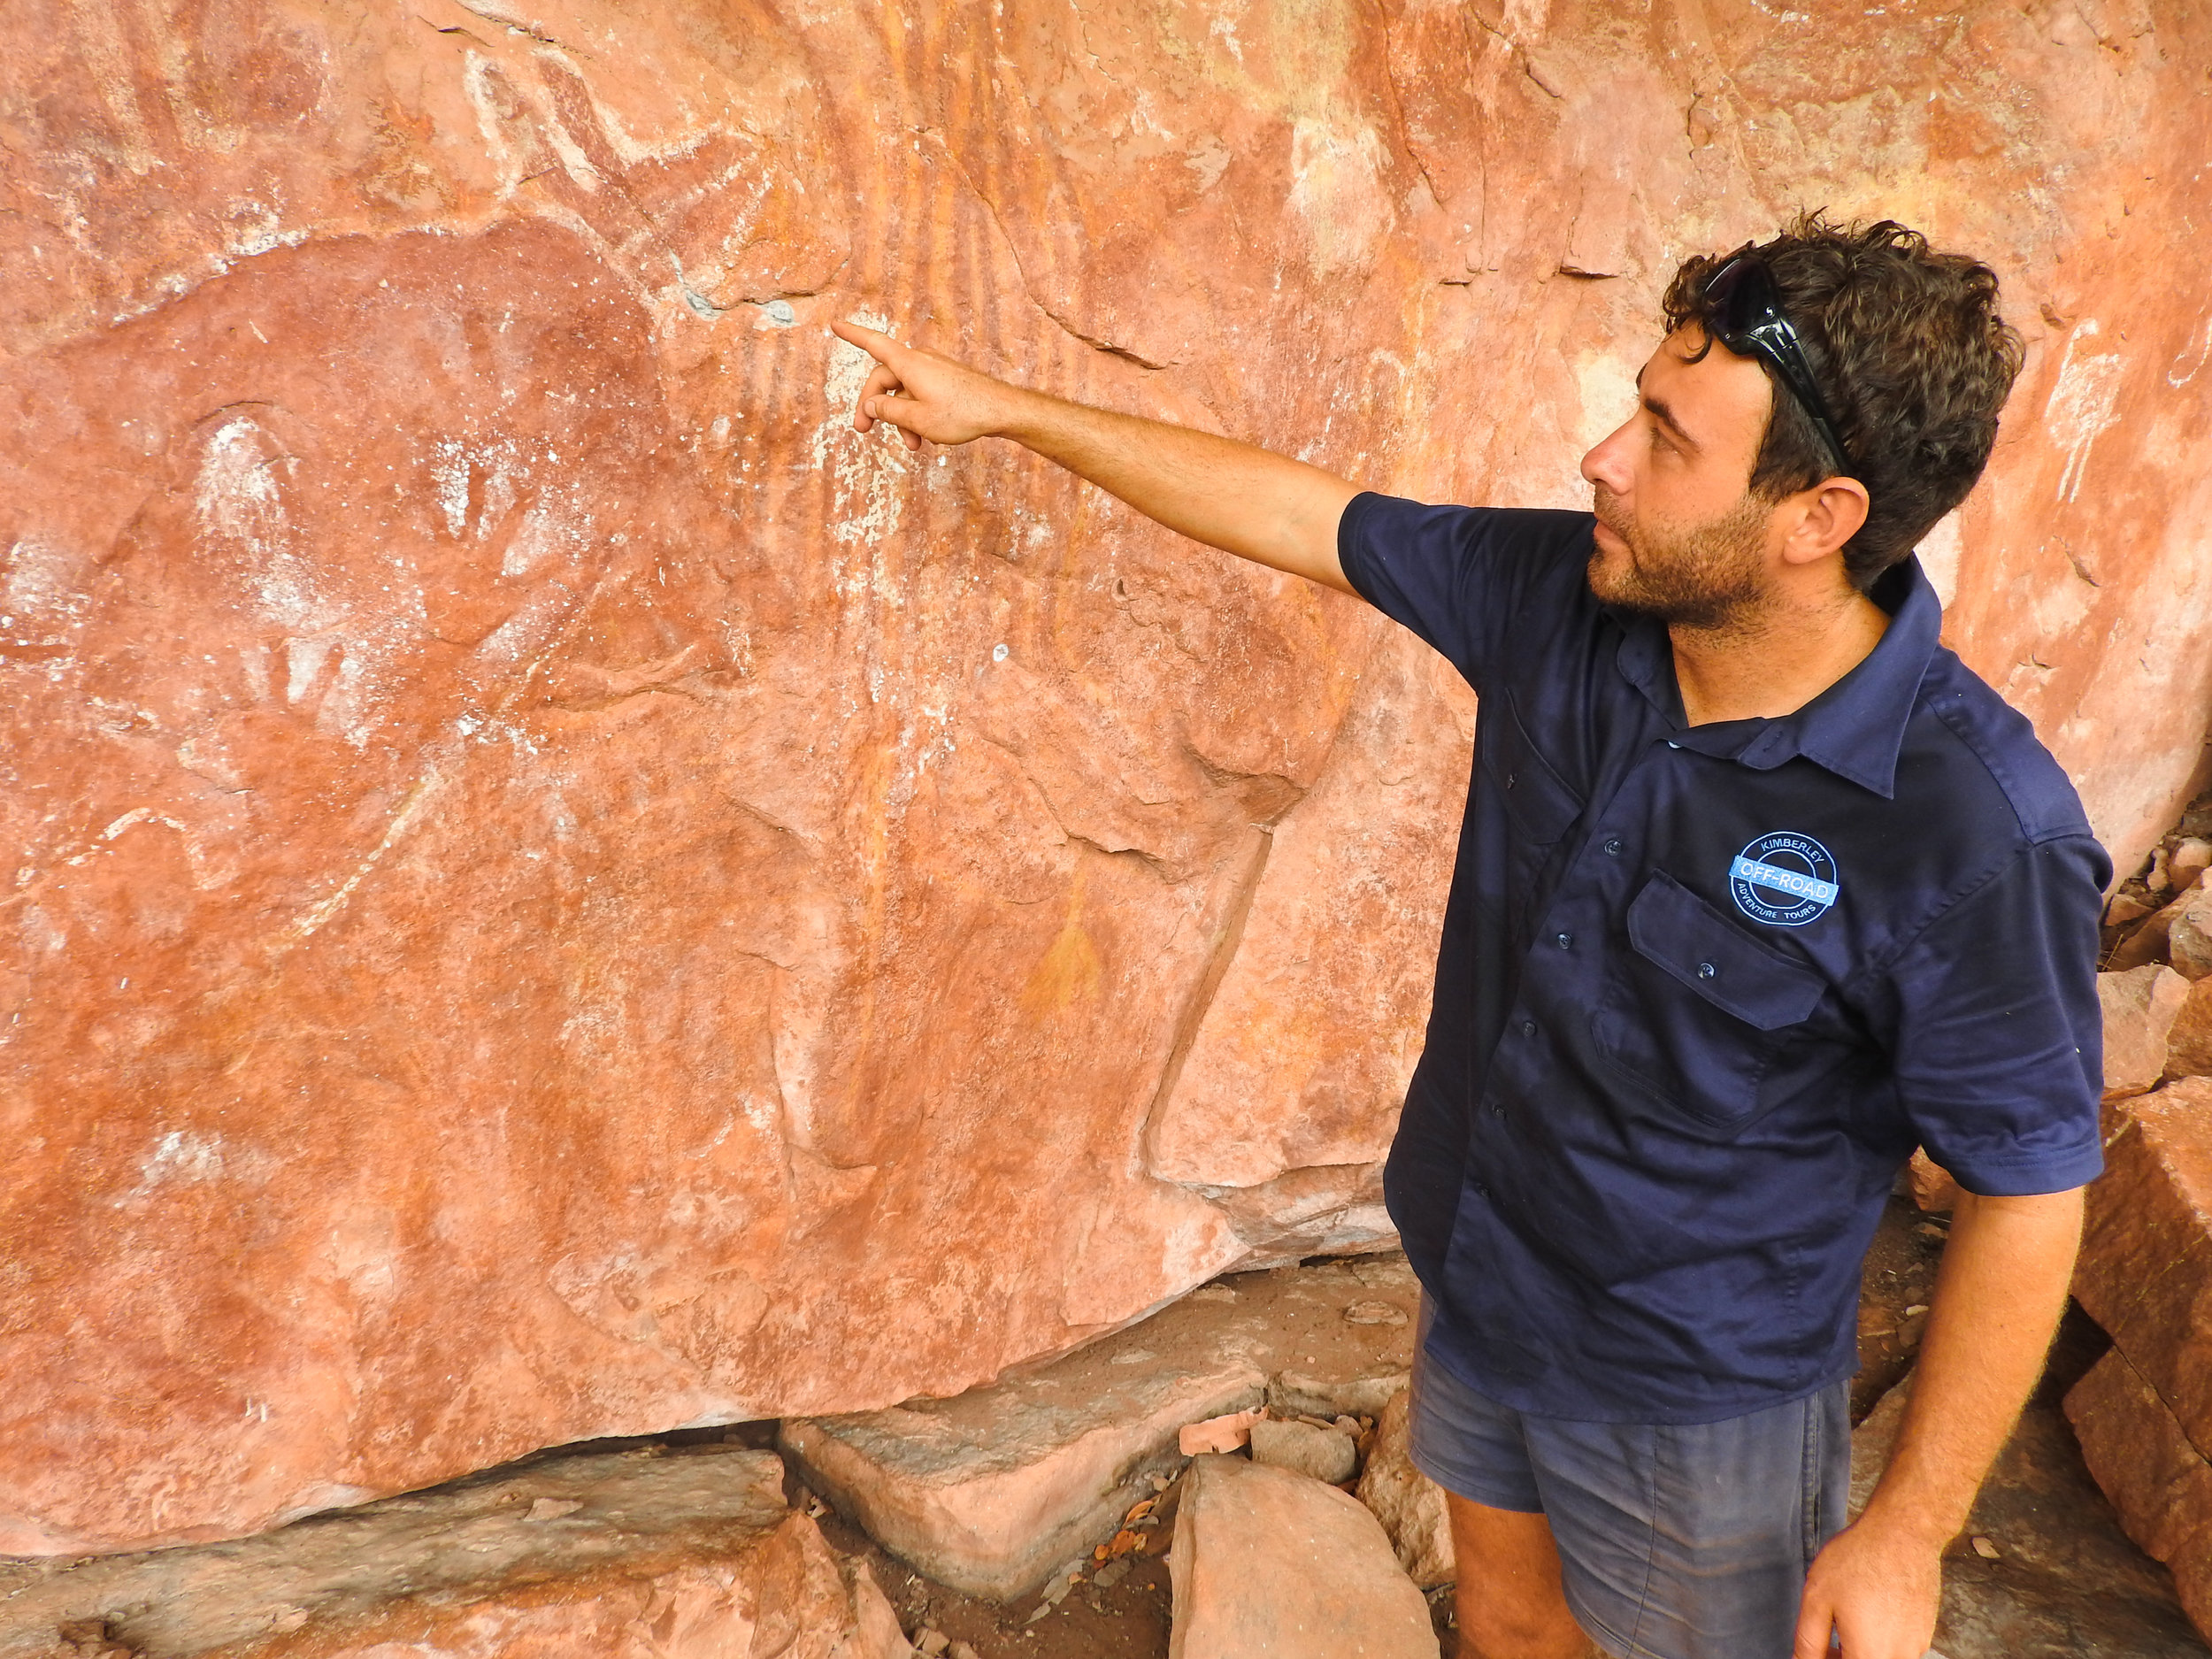 Guide Adam tells his passengers about the history of the local rock art